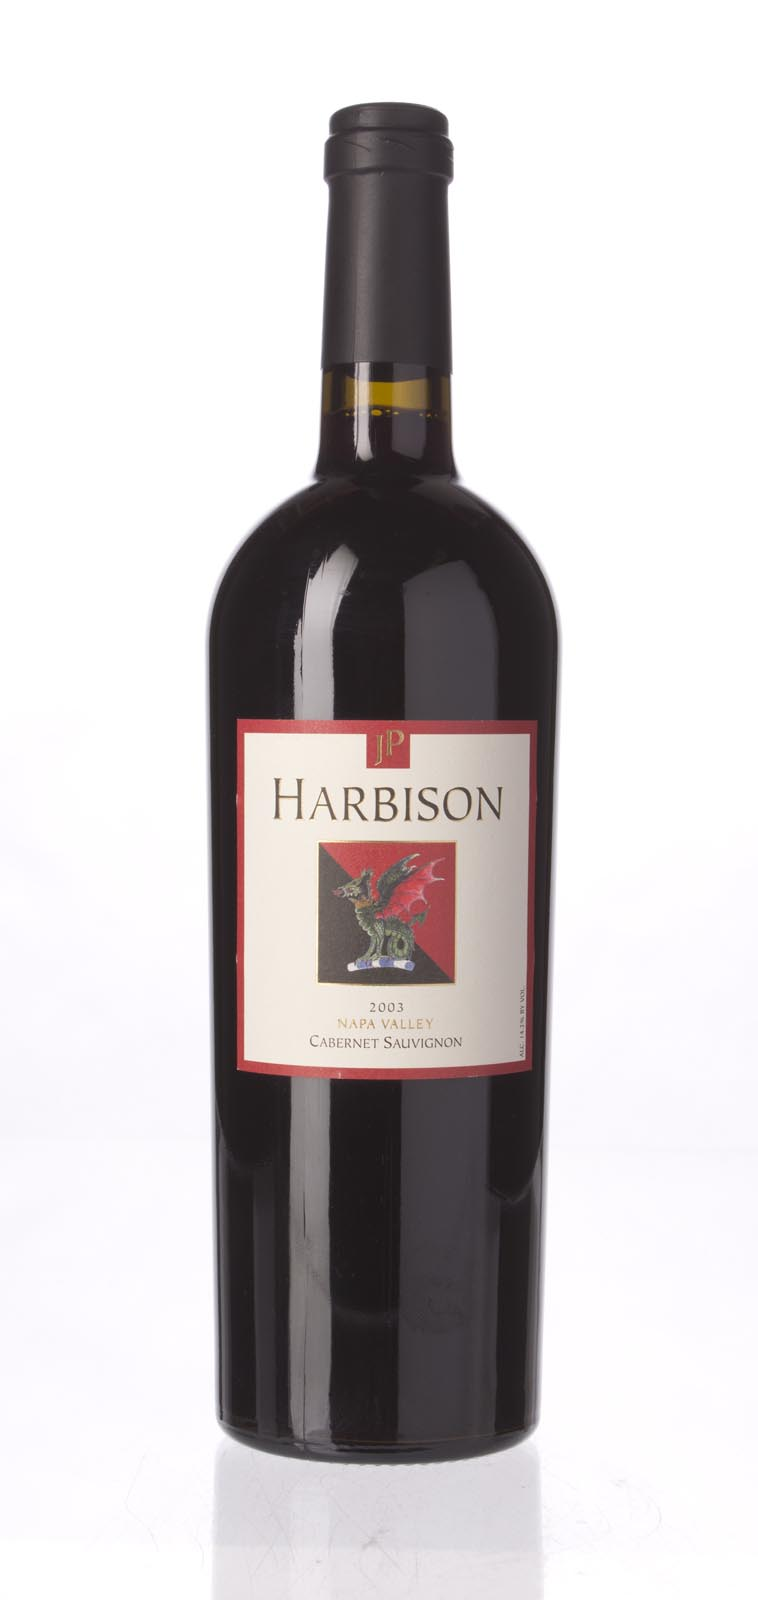 JP Harbison Cabernet Sauvignon Napa Valley 2003,  () from The BPW - Merchants of rare and fine wines.